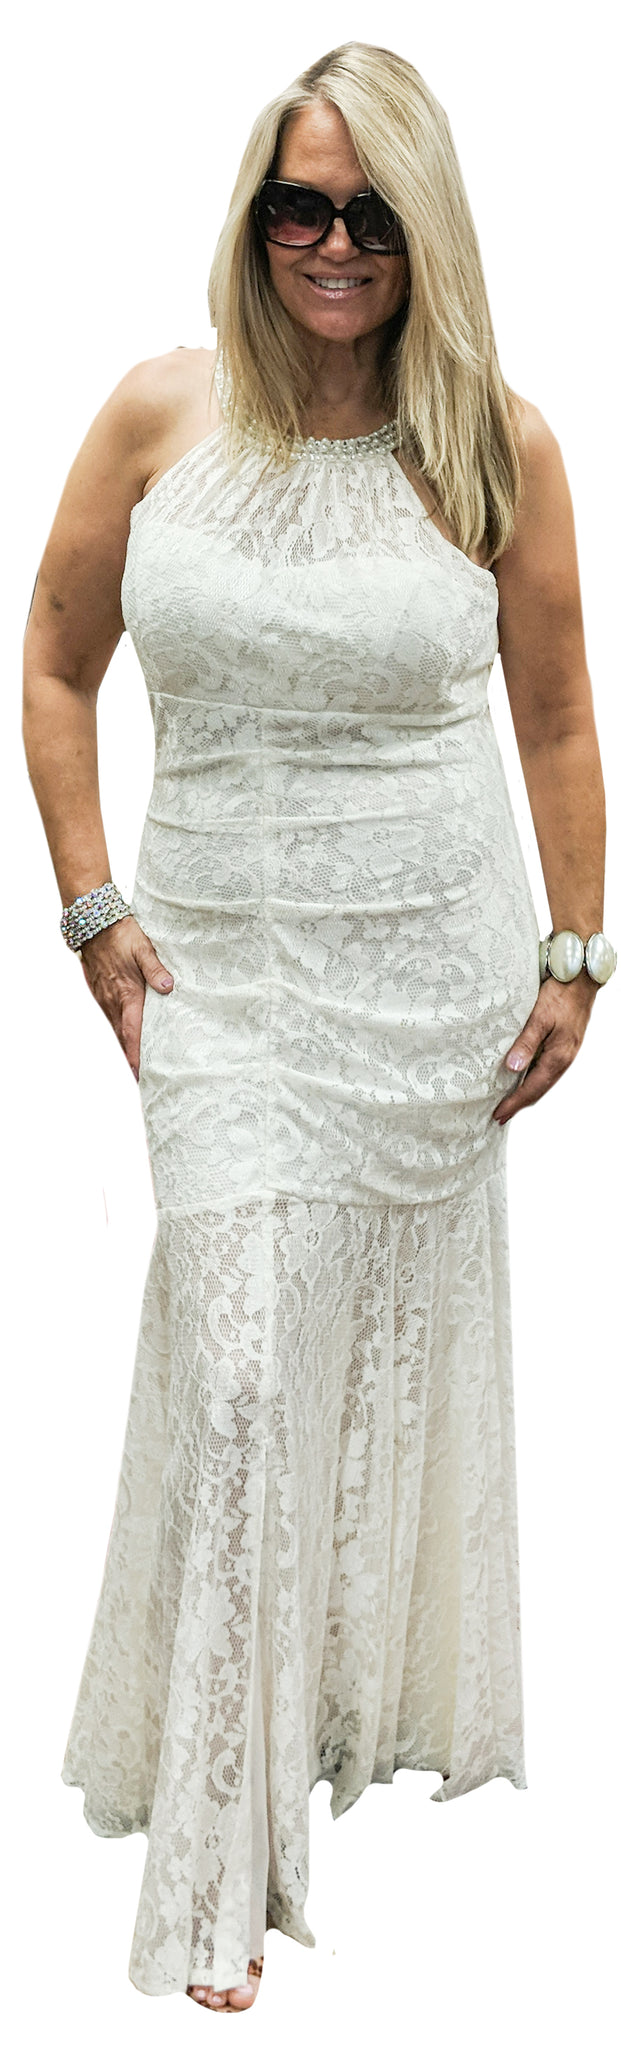 Ruched Lace Gown with Pearl Halter Neckline